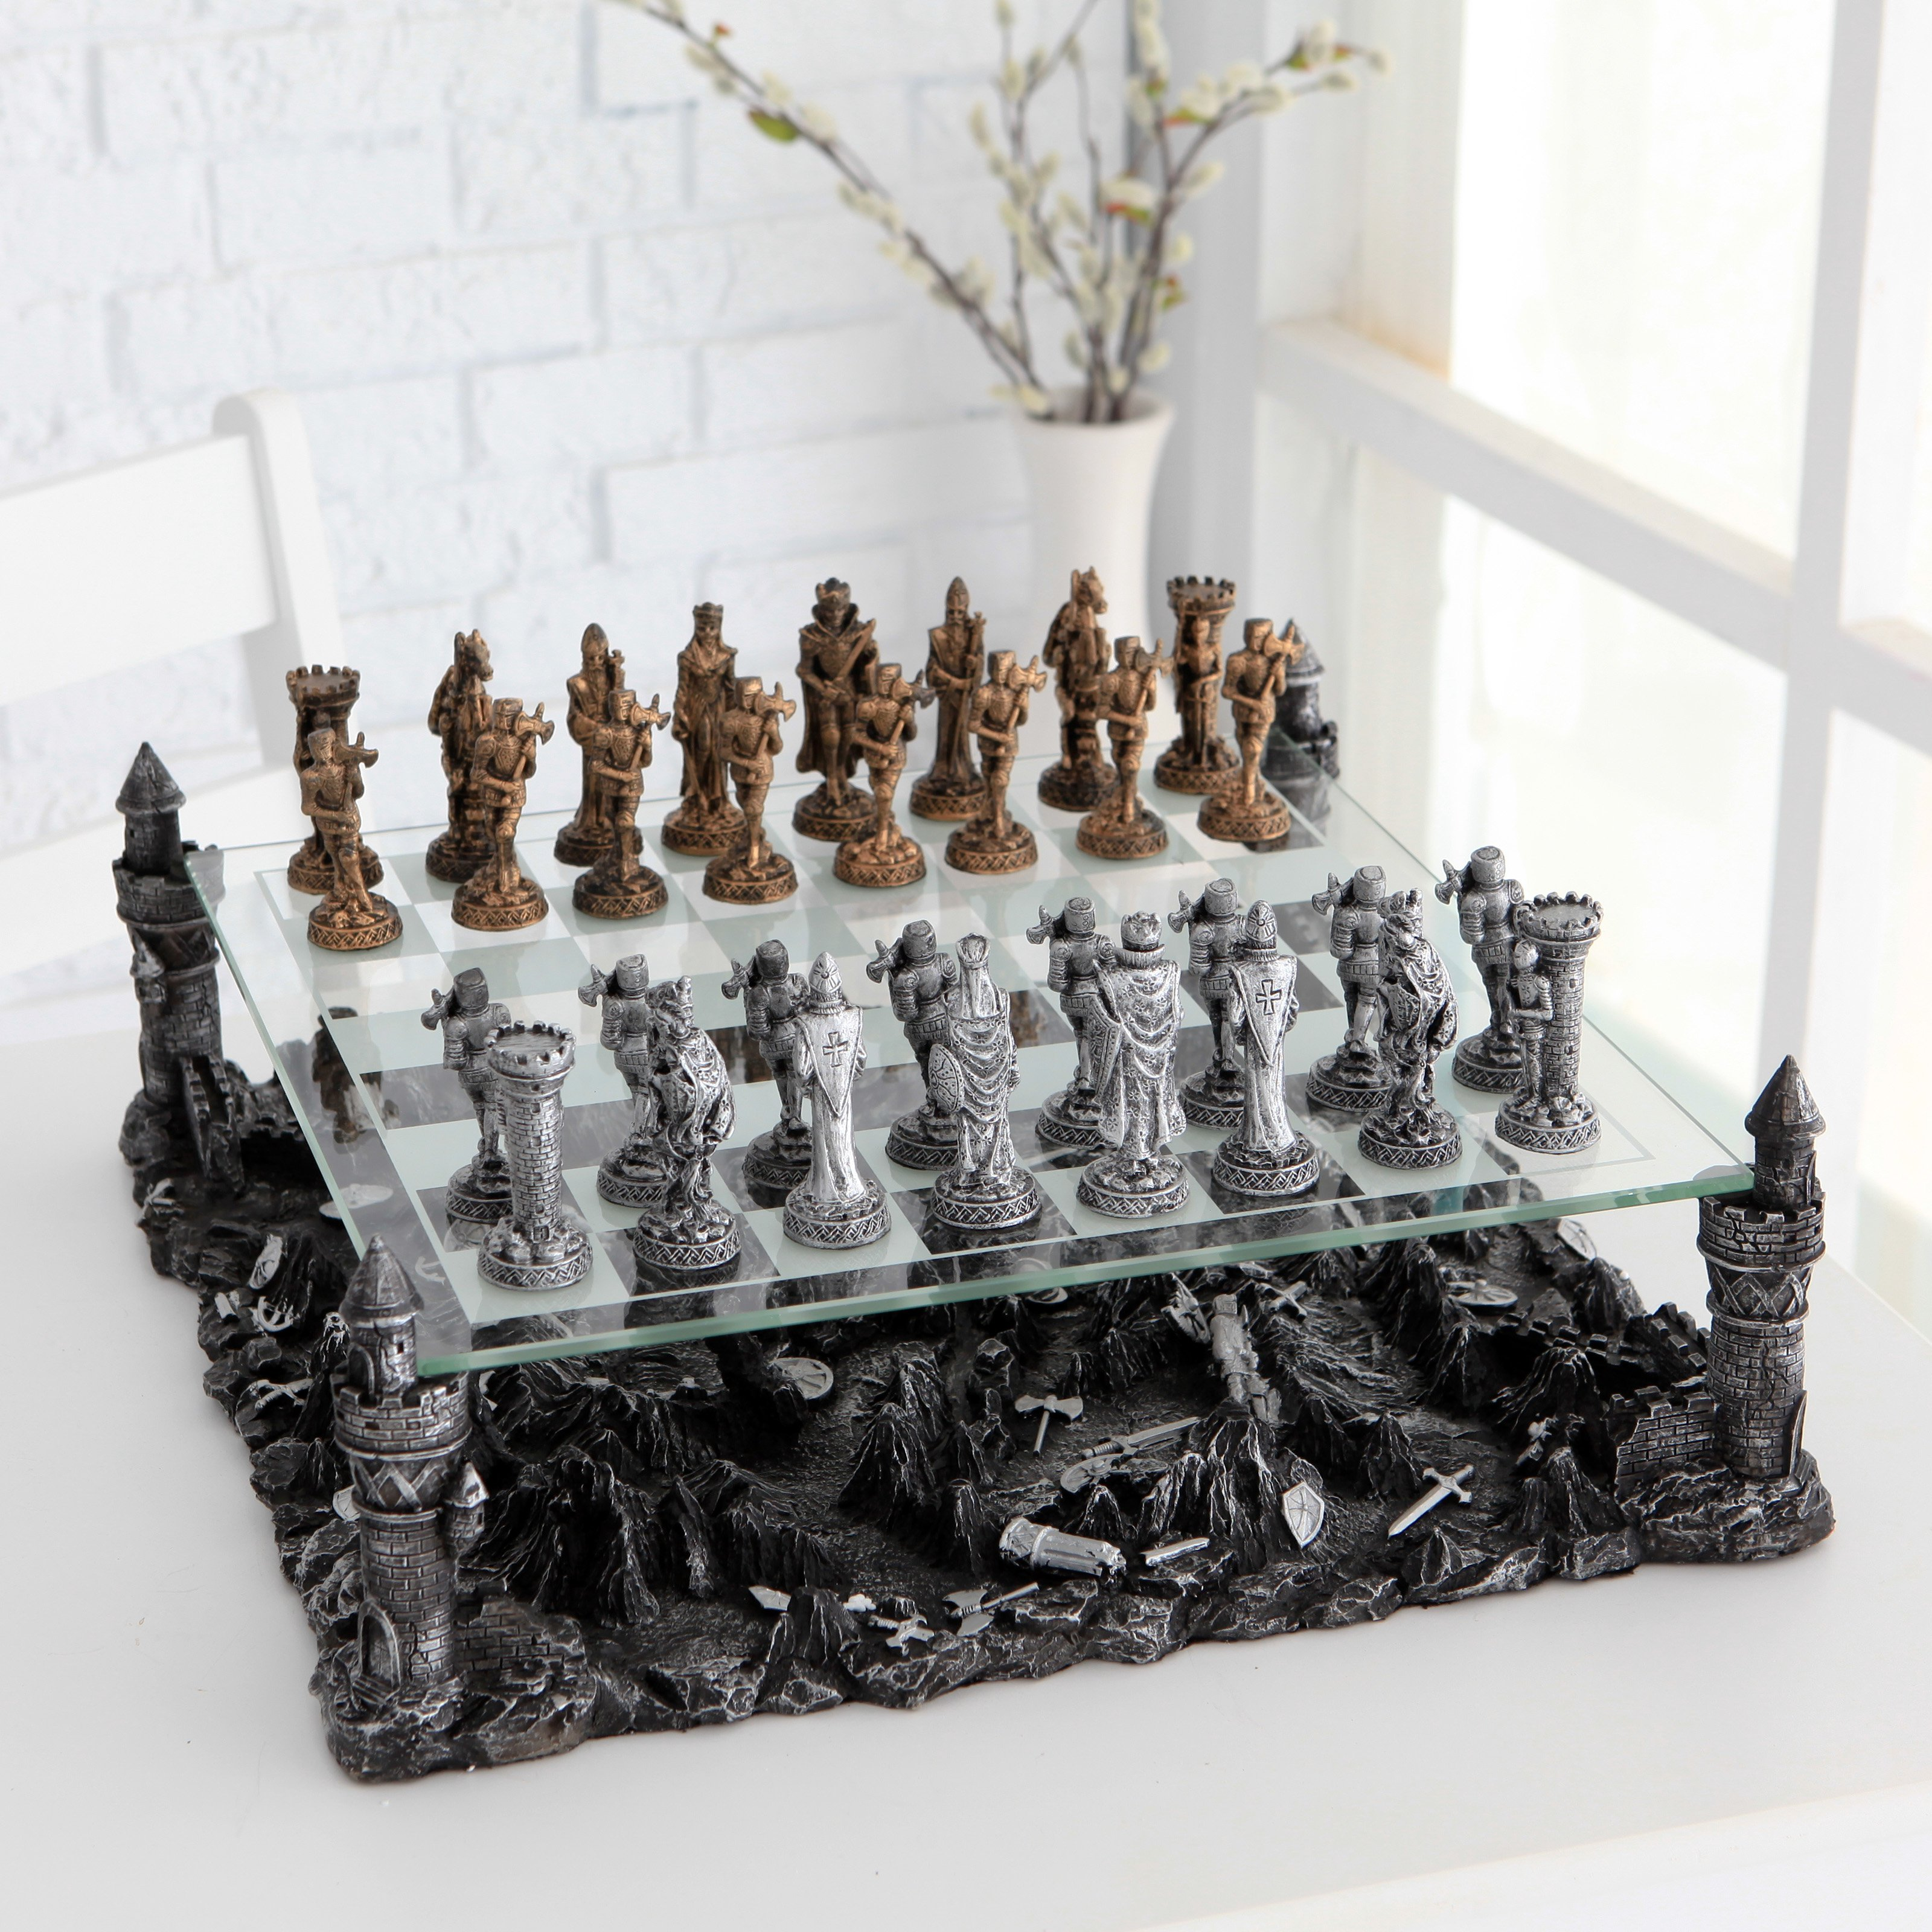 3D Knight Pewter Chess Set by CHH